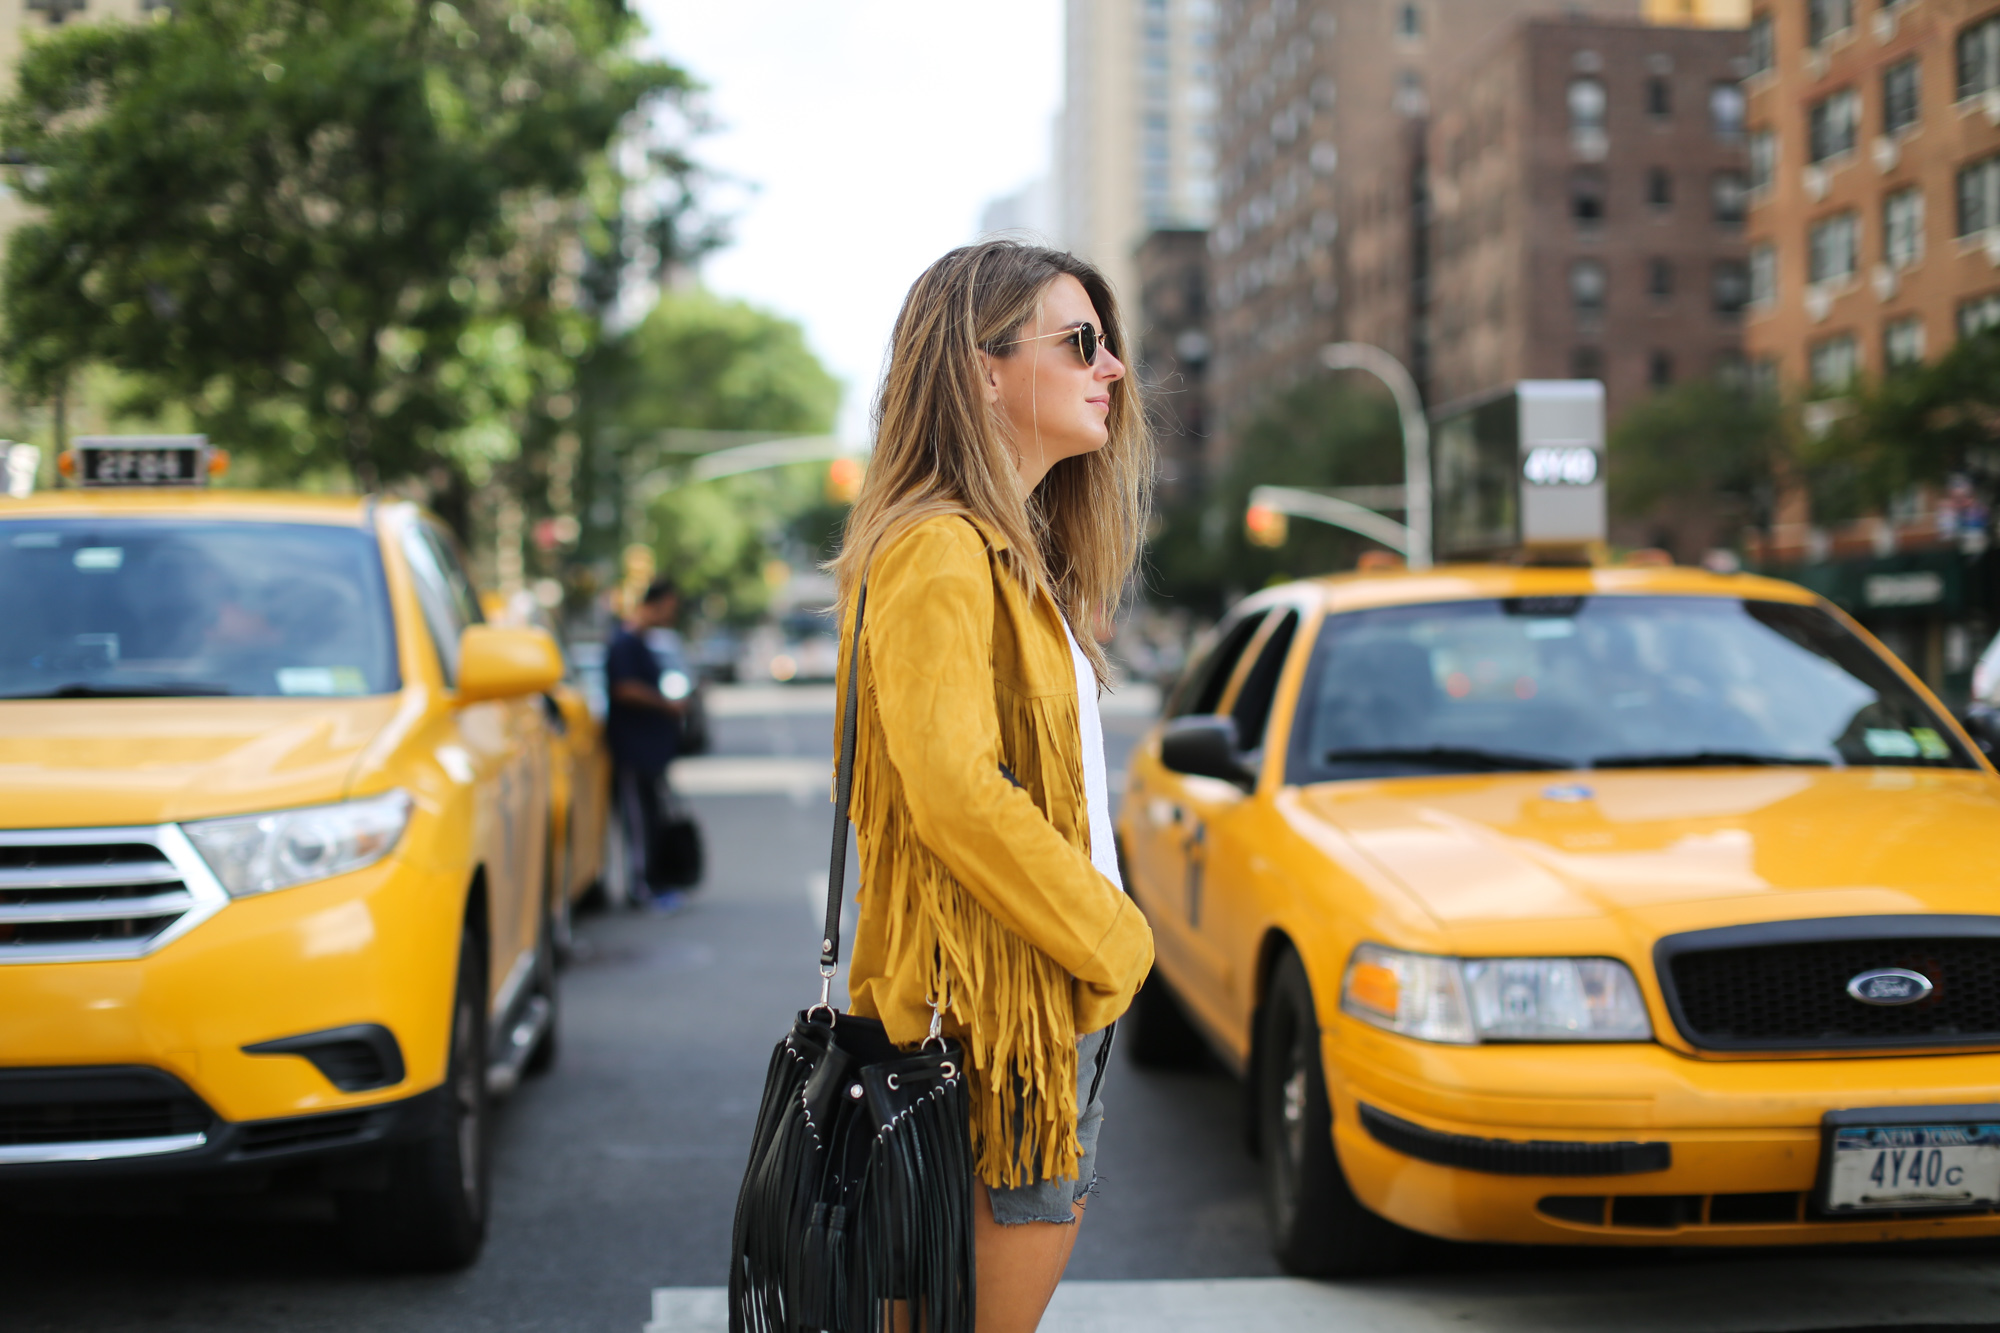 Clochet_streetstyle_suede_fringed_yellow_jacket_levis_501-2